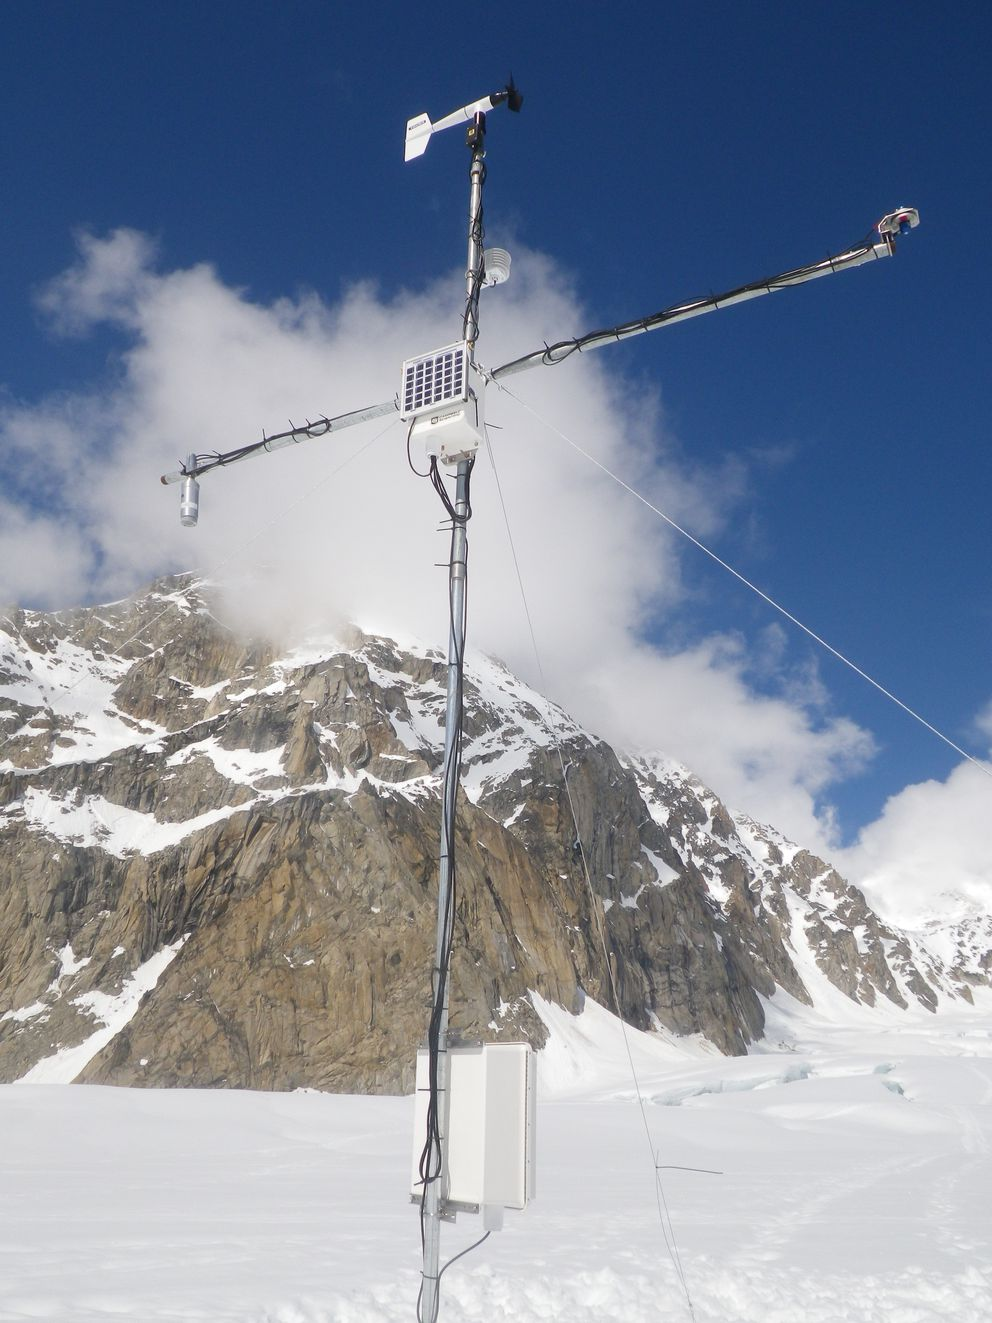 The 7,000-foot weather station is readied for winter. (Photo by Dominick Winski)